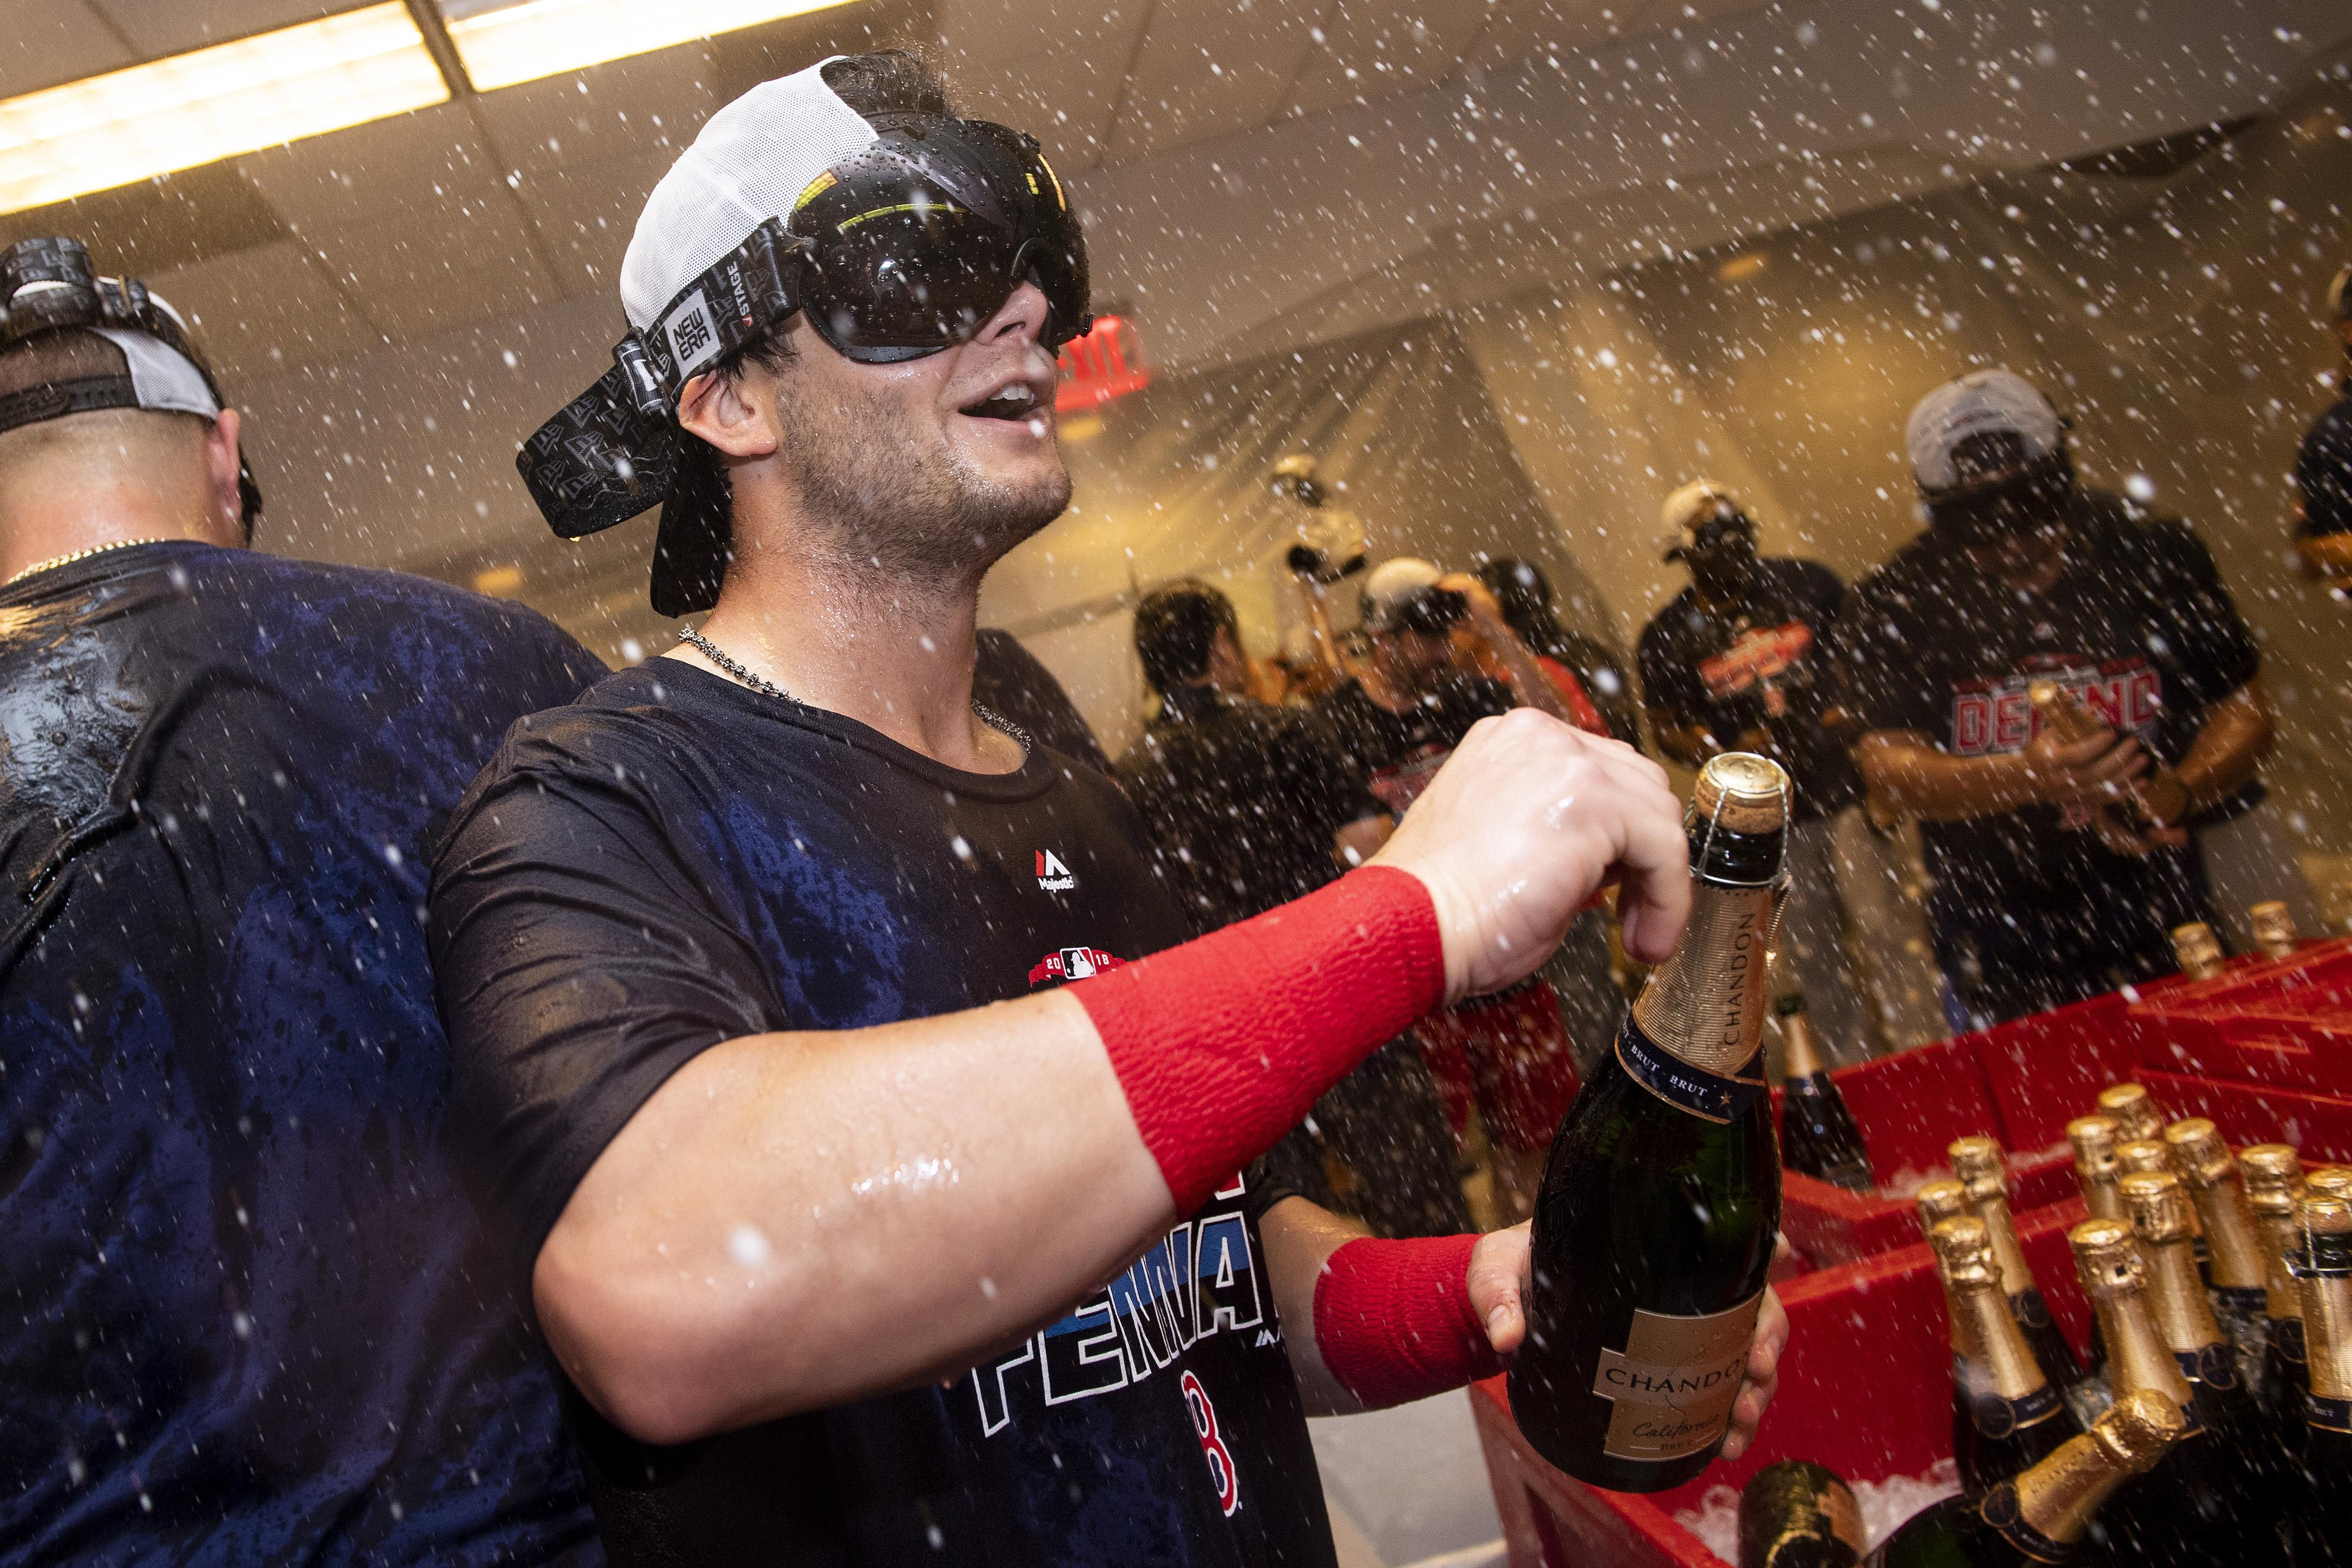 The Boston Red Sox beat rivals New York Yankees to clinch the title